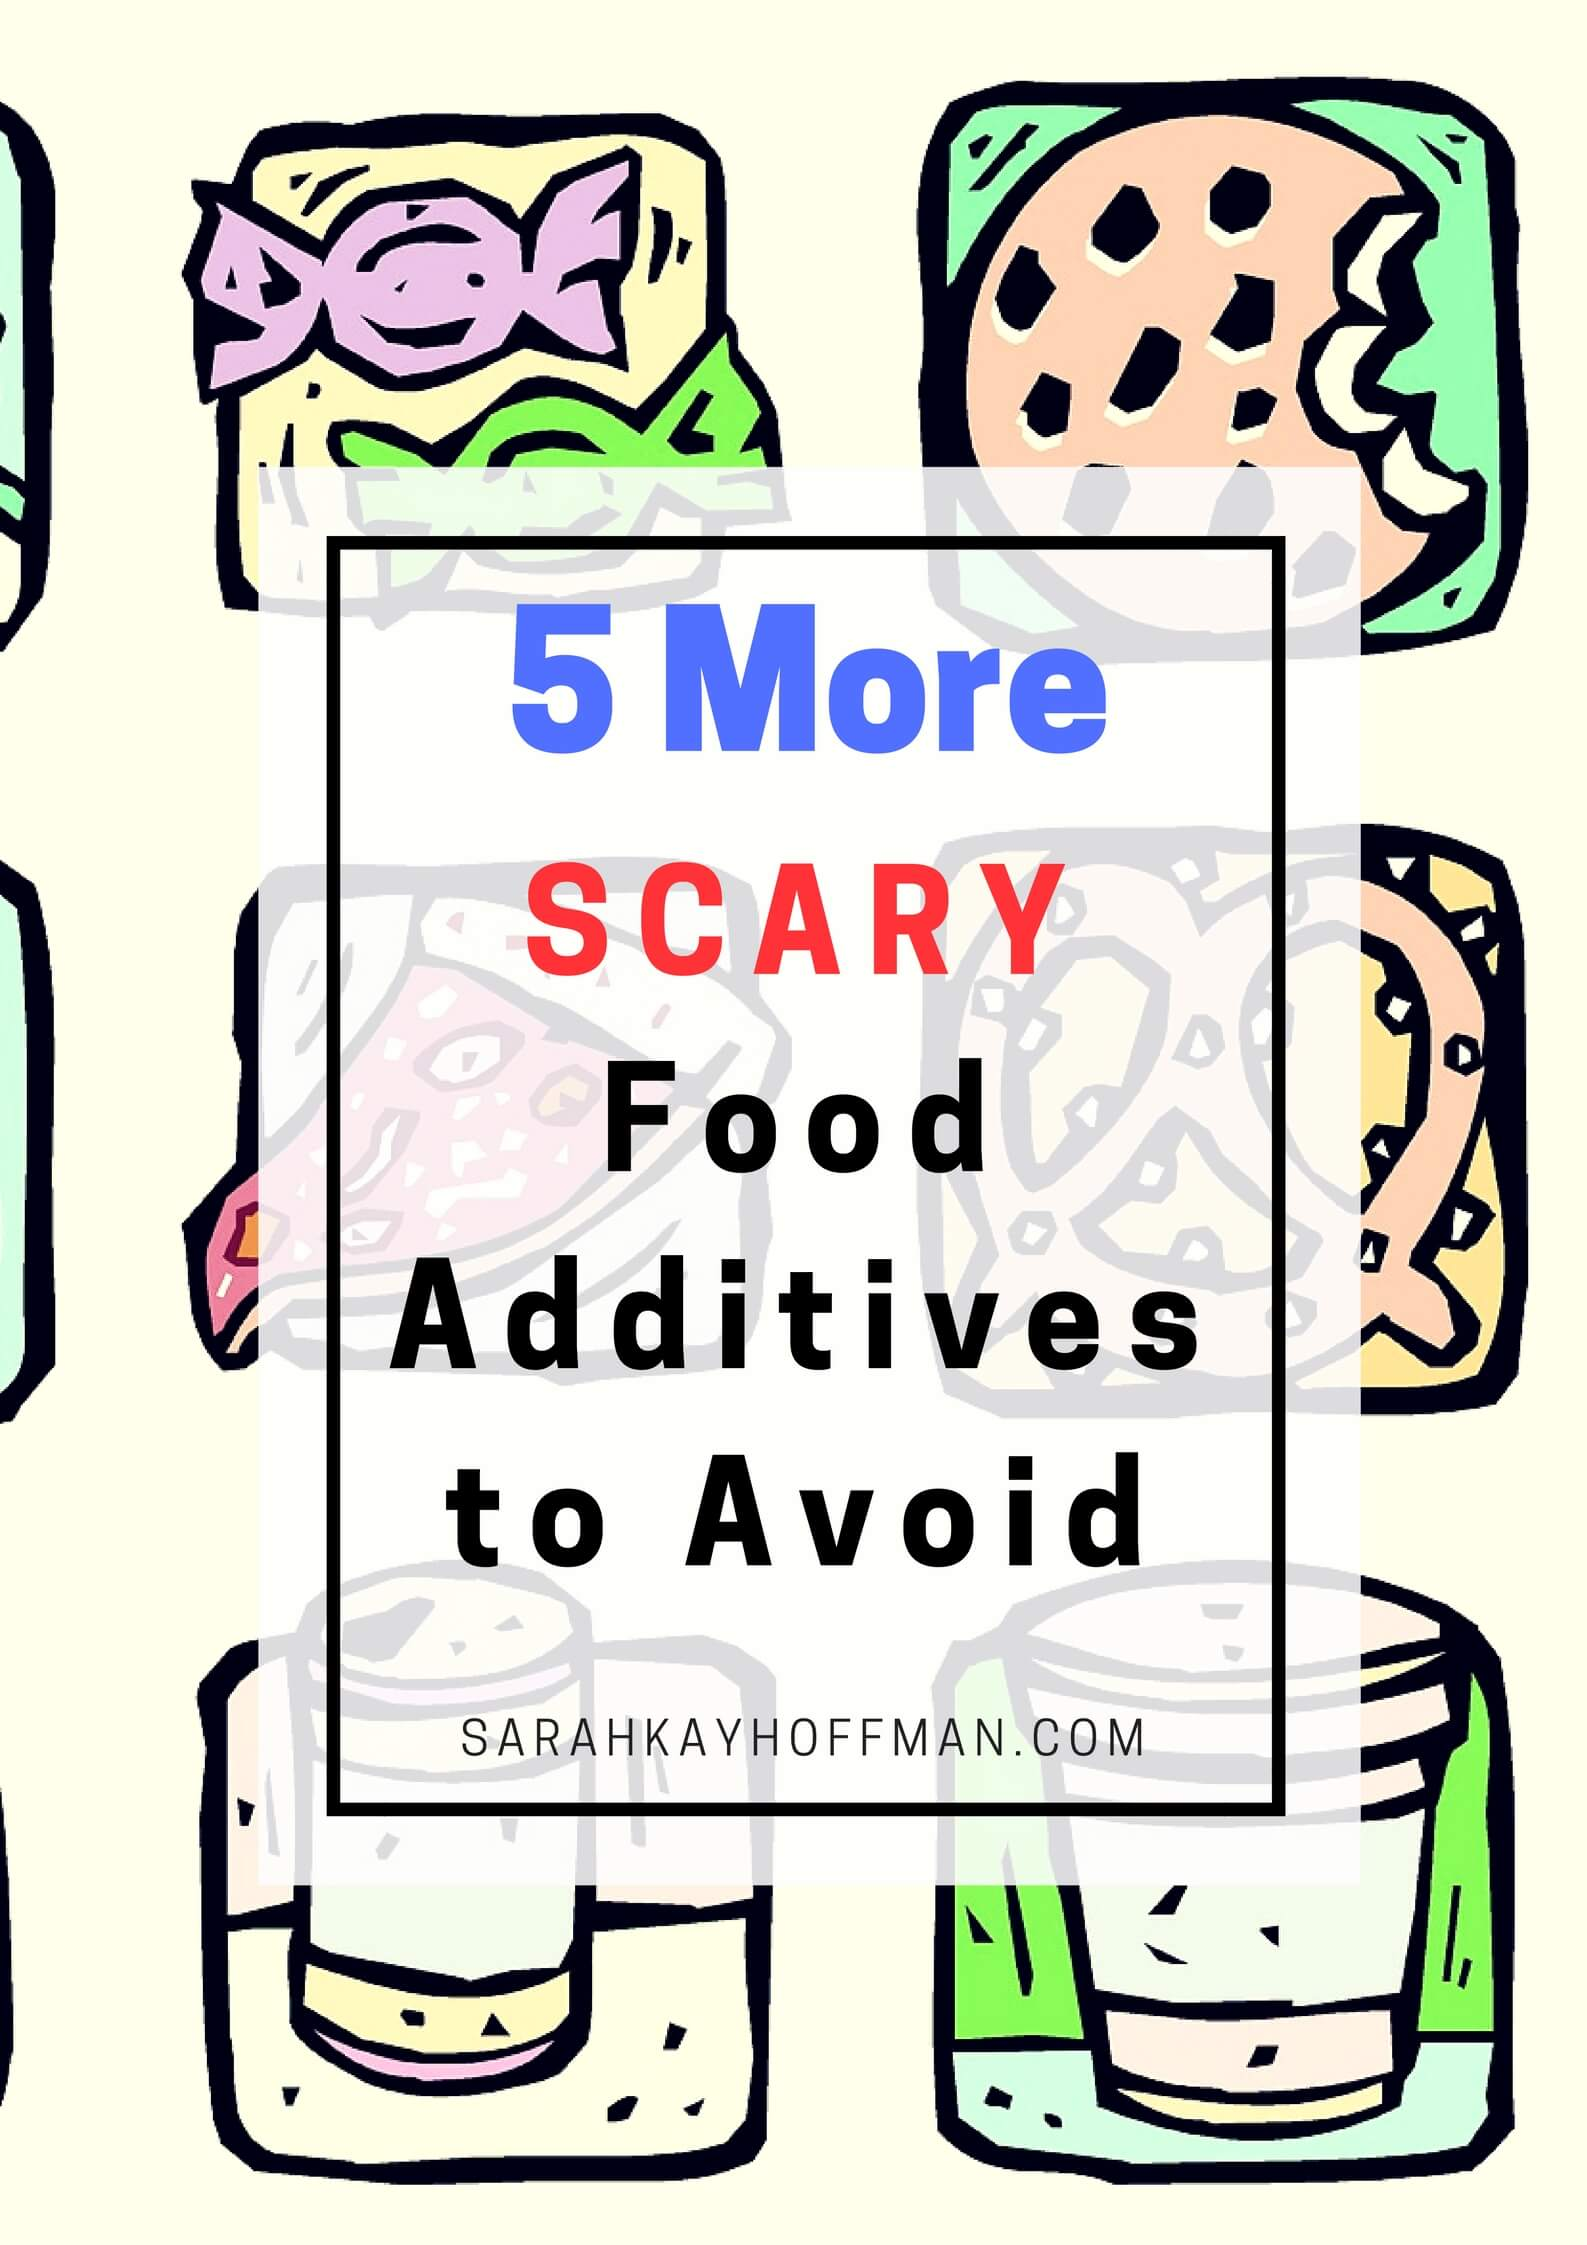 5 More Scary Food Additives to Avoid sarahkayhoffman.com #ibs #healthyliving #guthealth #gmos